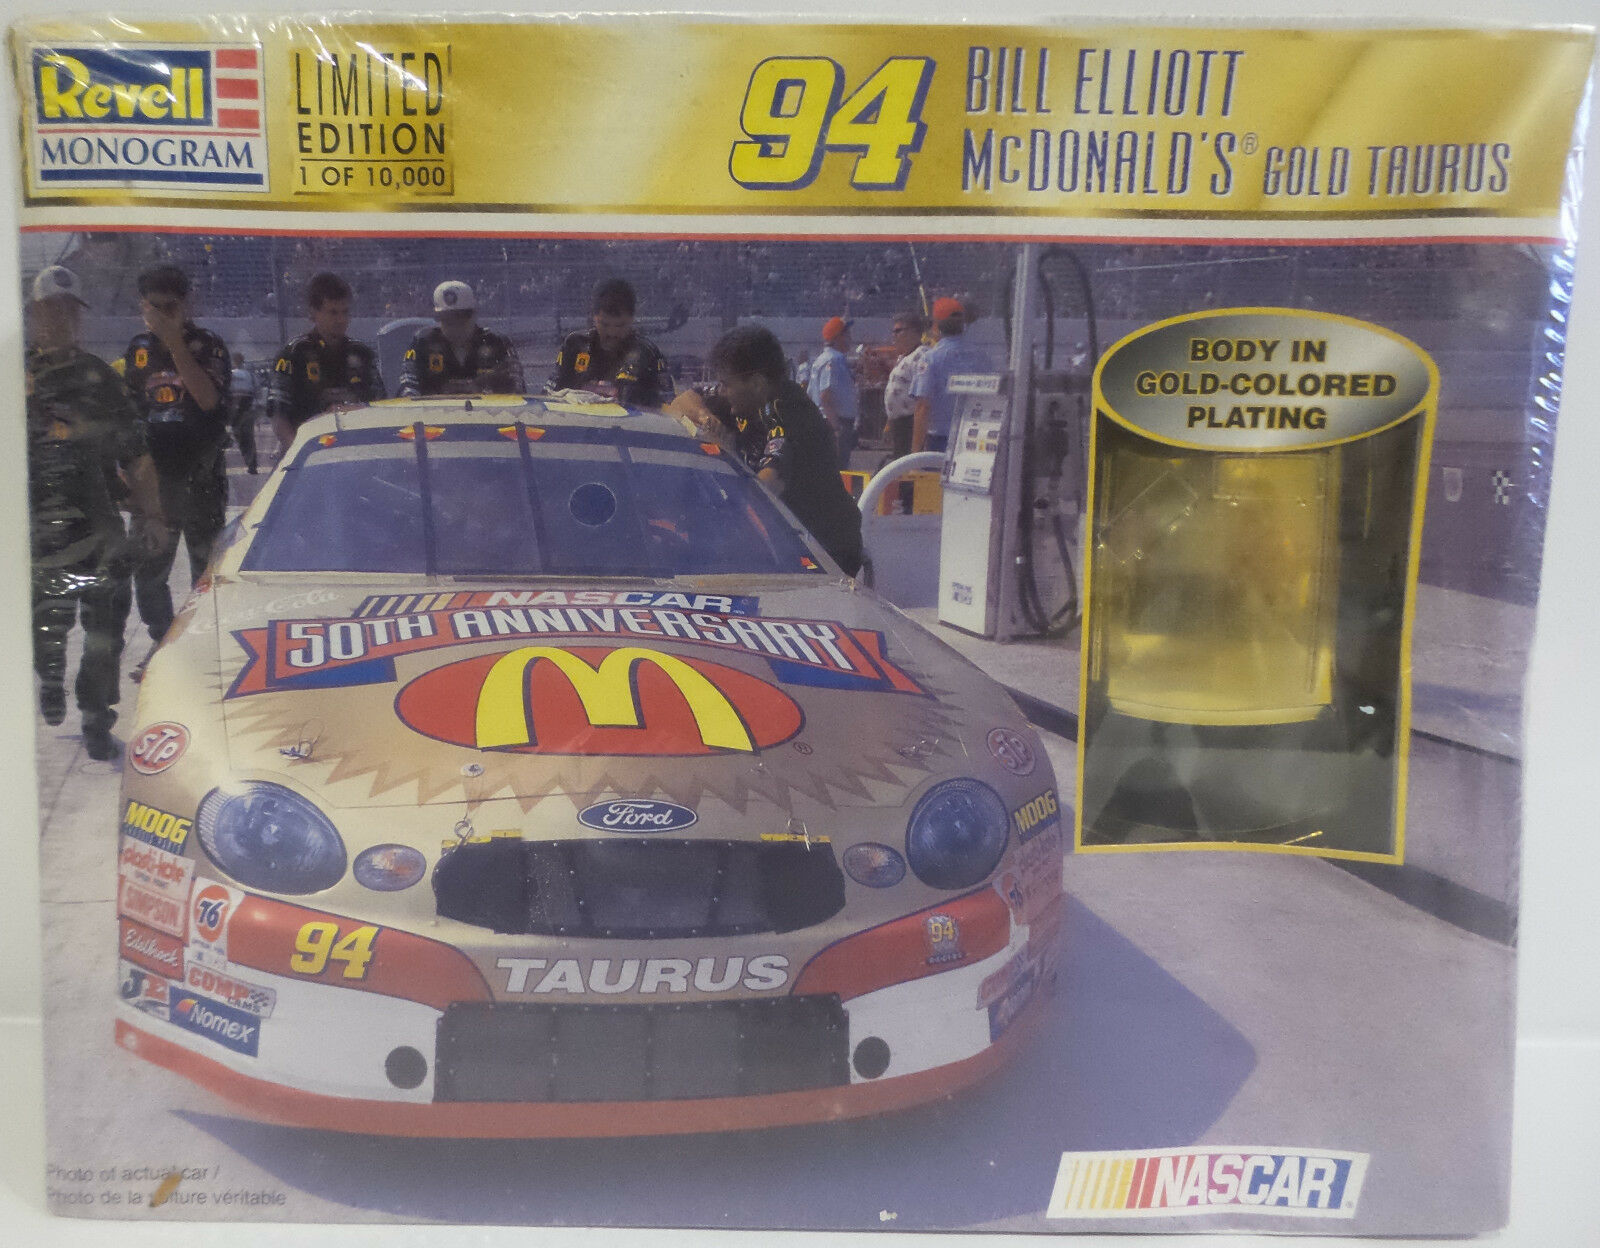 CARS   94 BILL ELIIOT MCDOANLD'S gold TAURUS 1 24 SCALE REVELL MODEL KIT